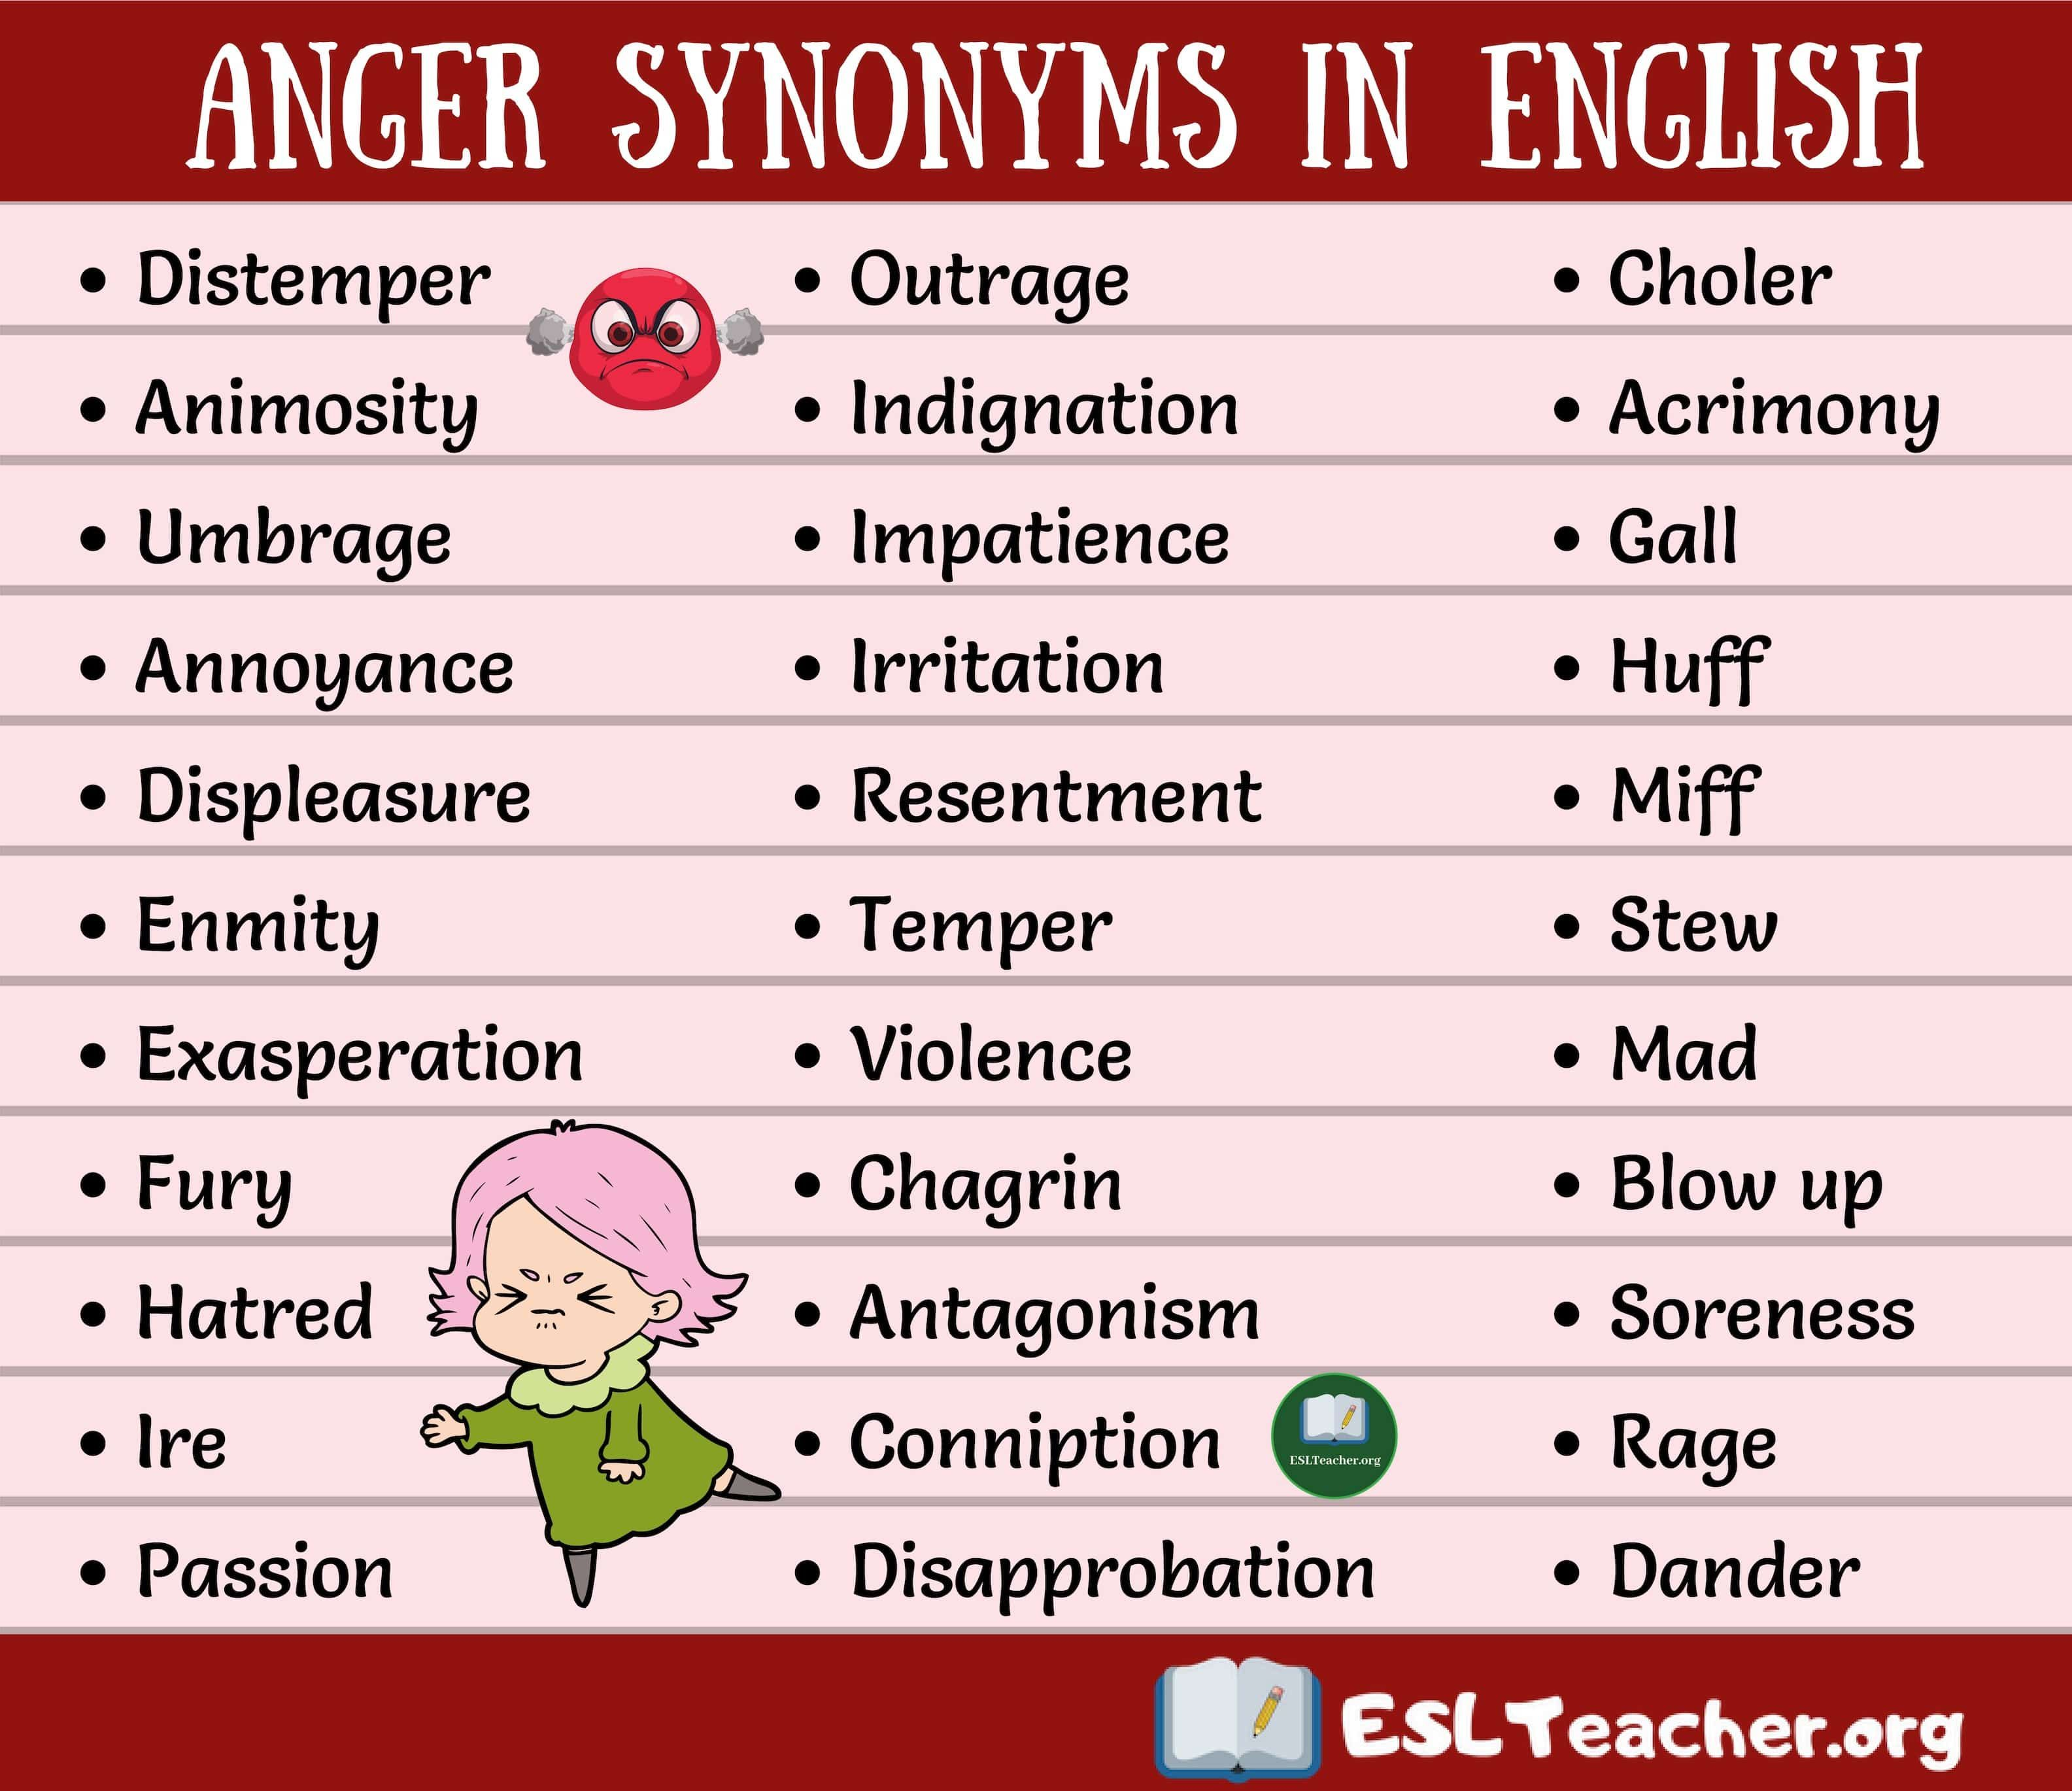 Synonyms For Anger Interesting List Of 33 Anger Synonyms